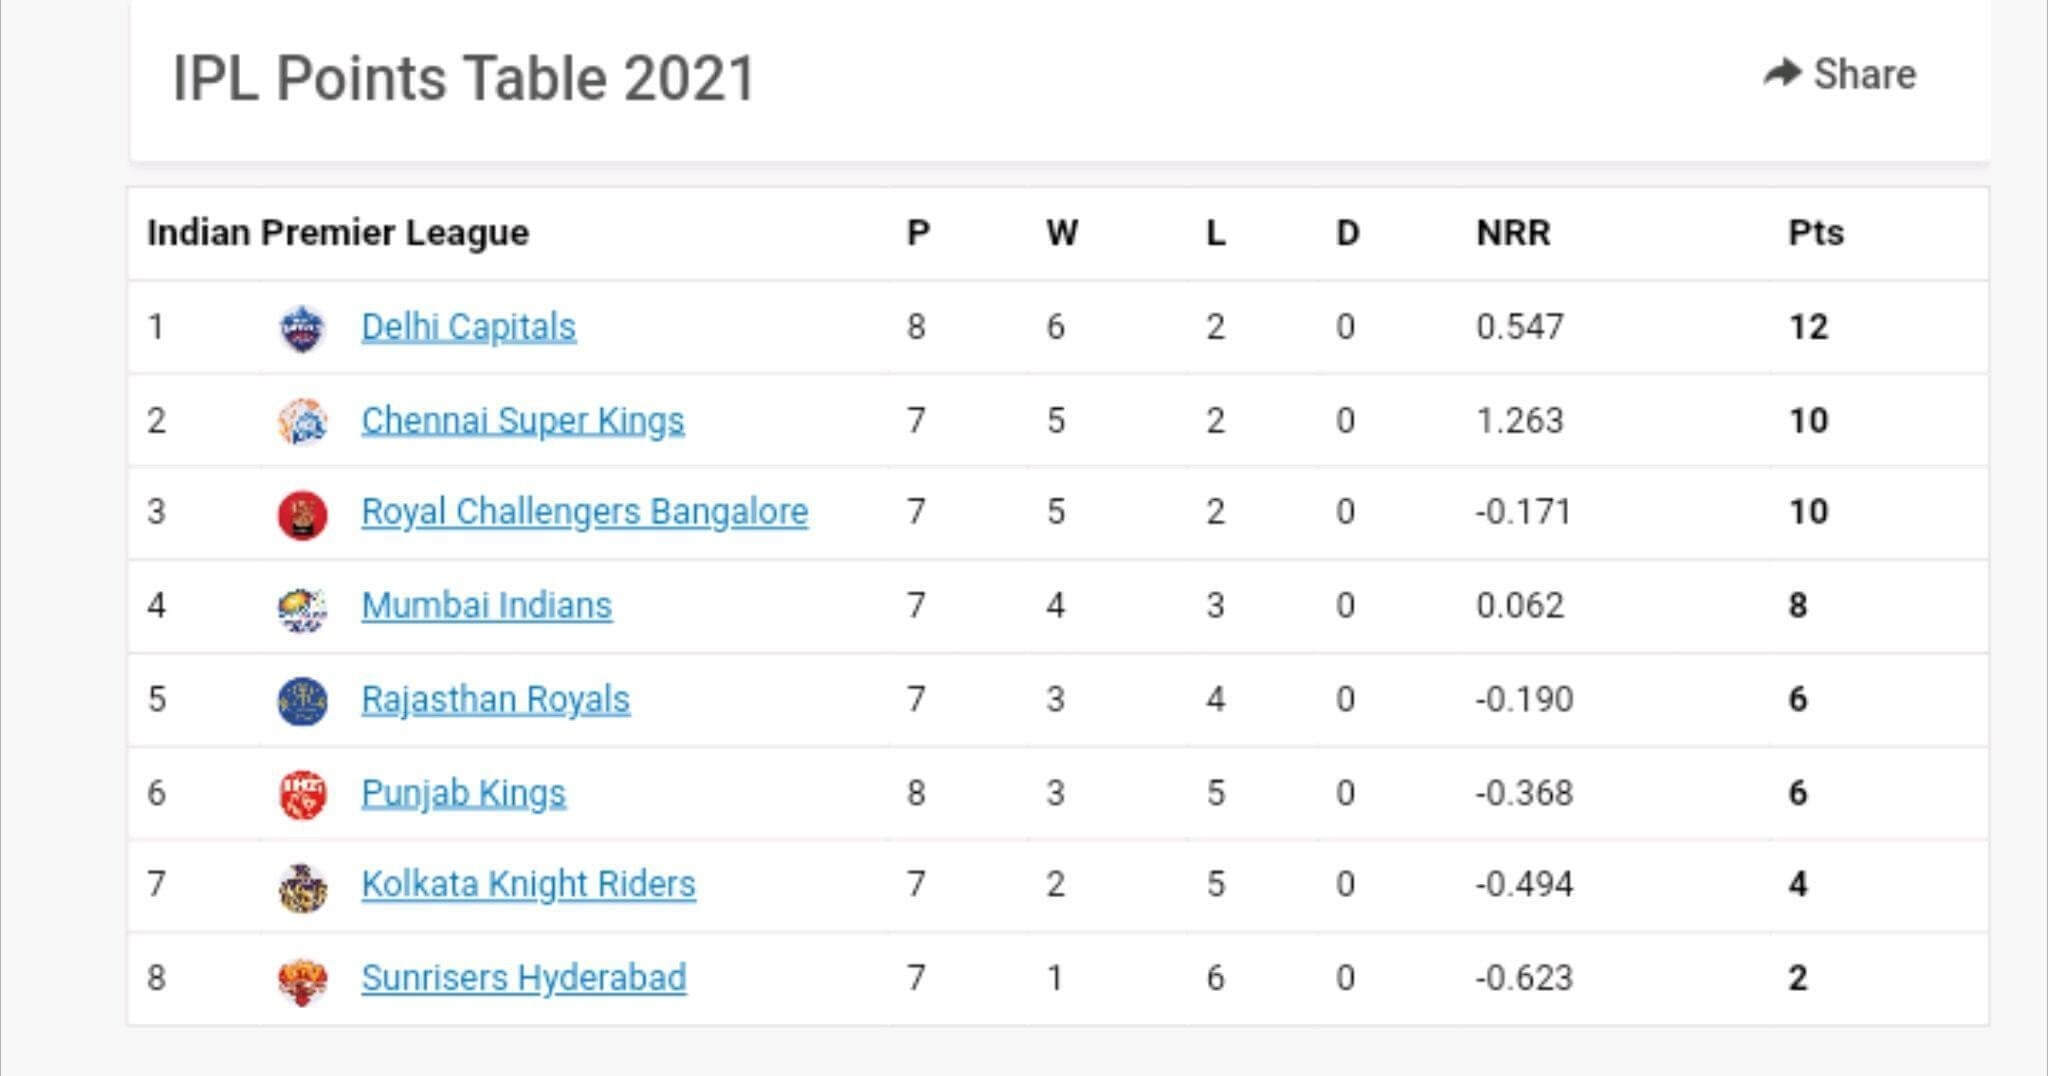 IPL 2021 Points Table and Rankings